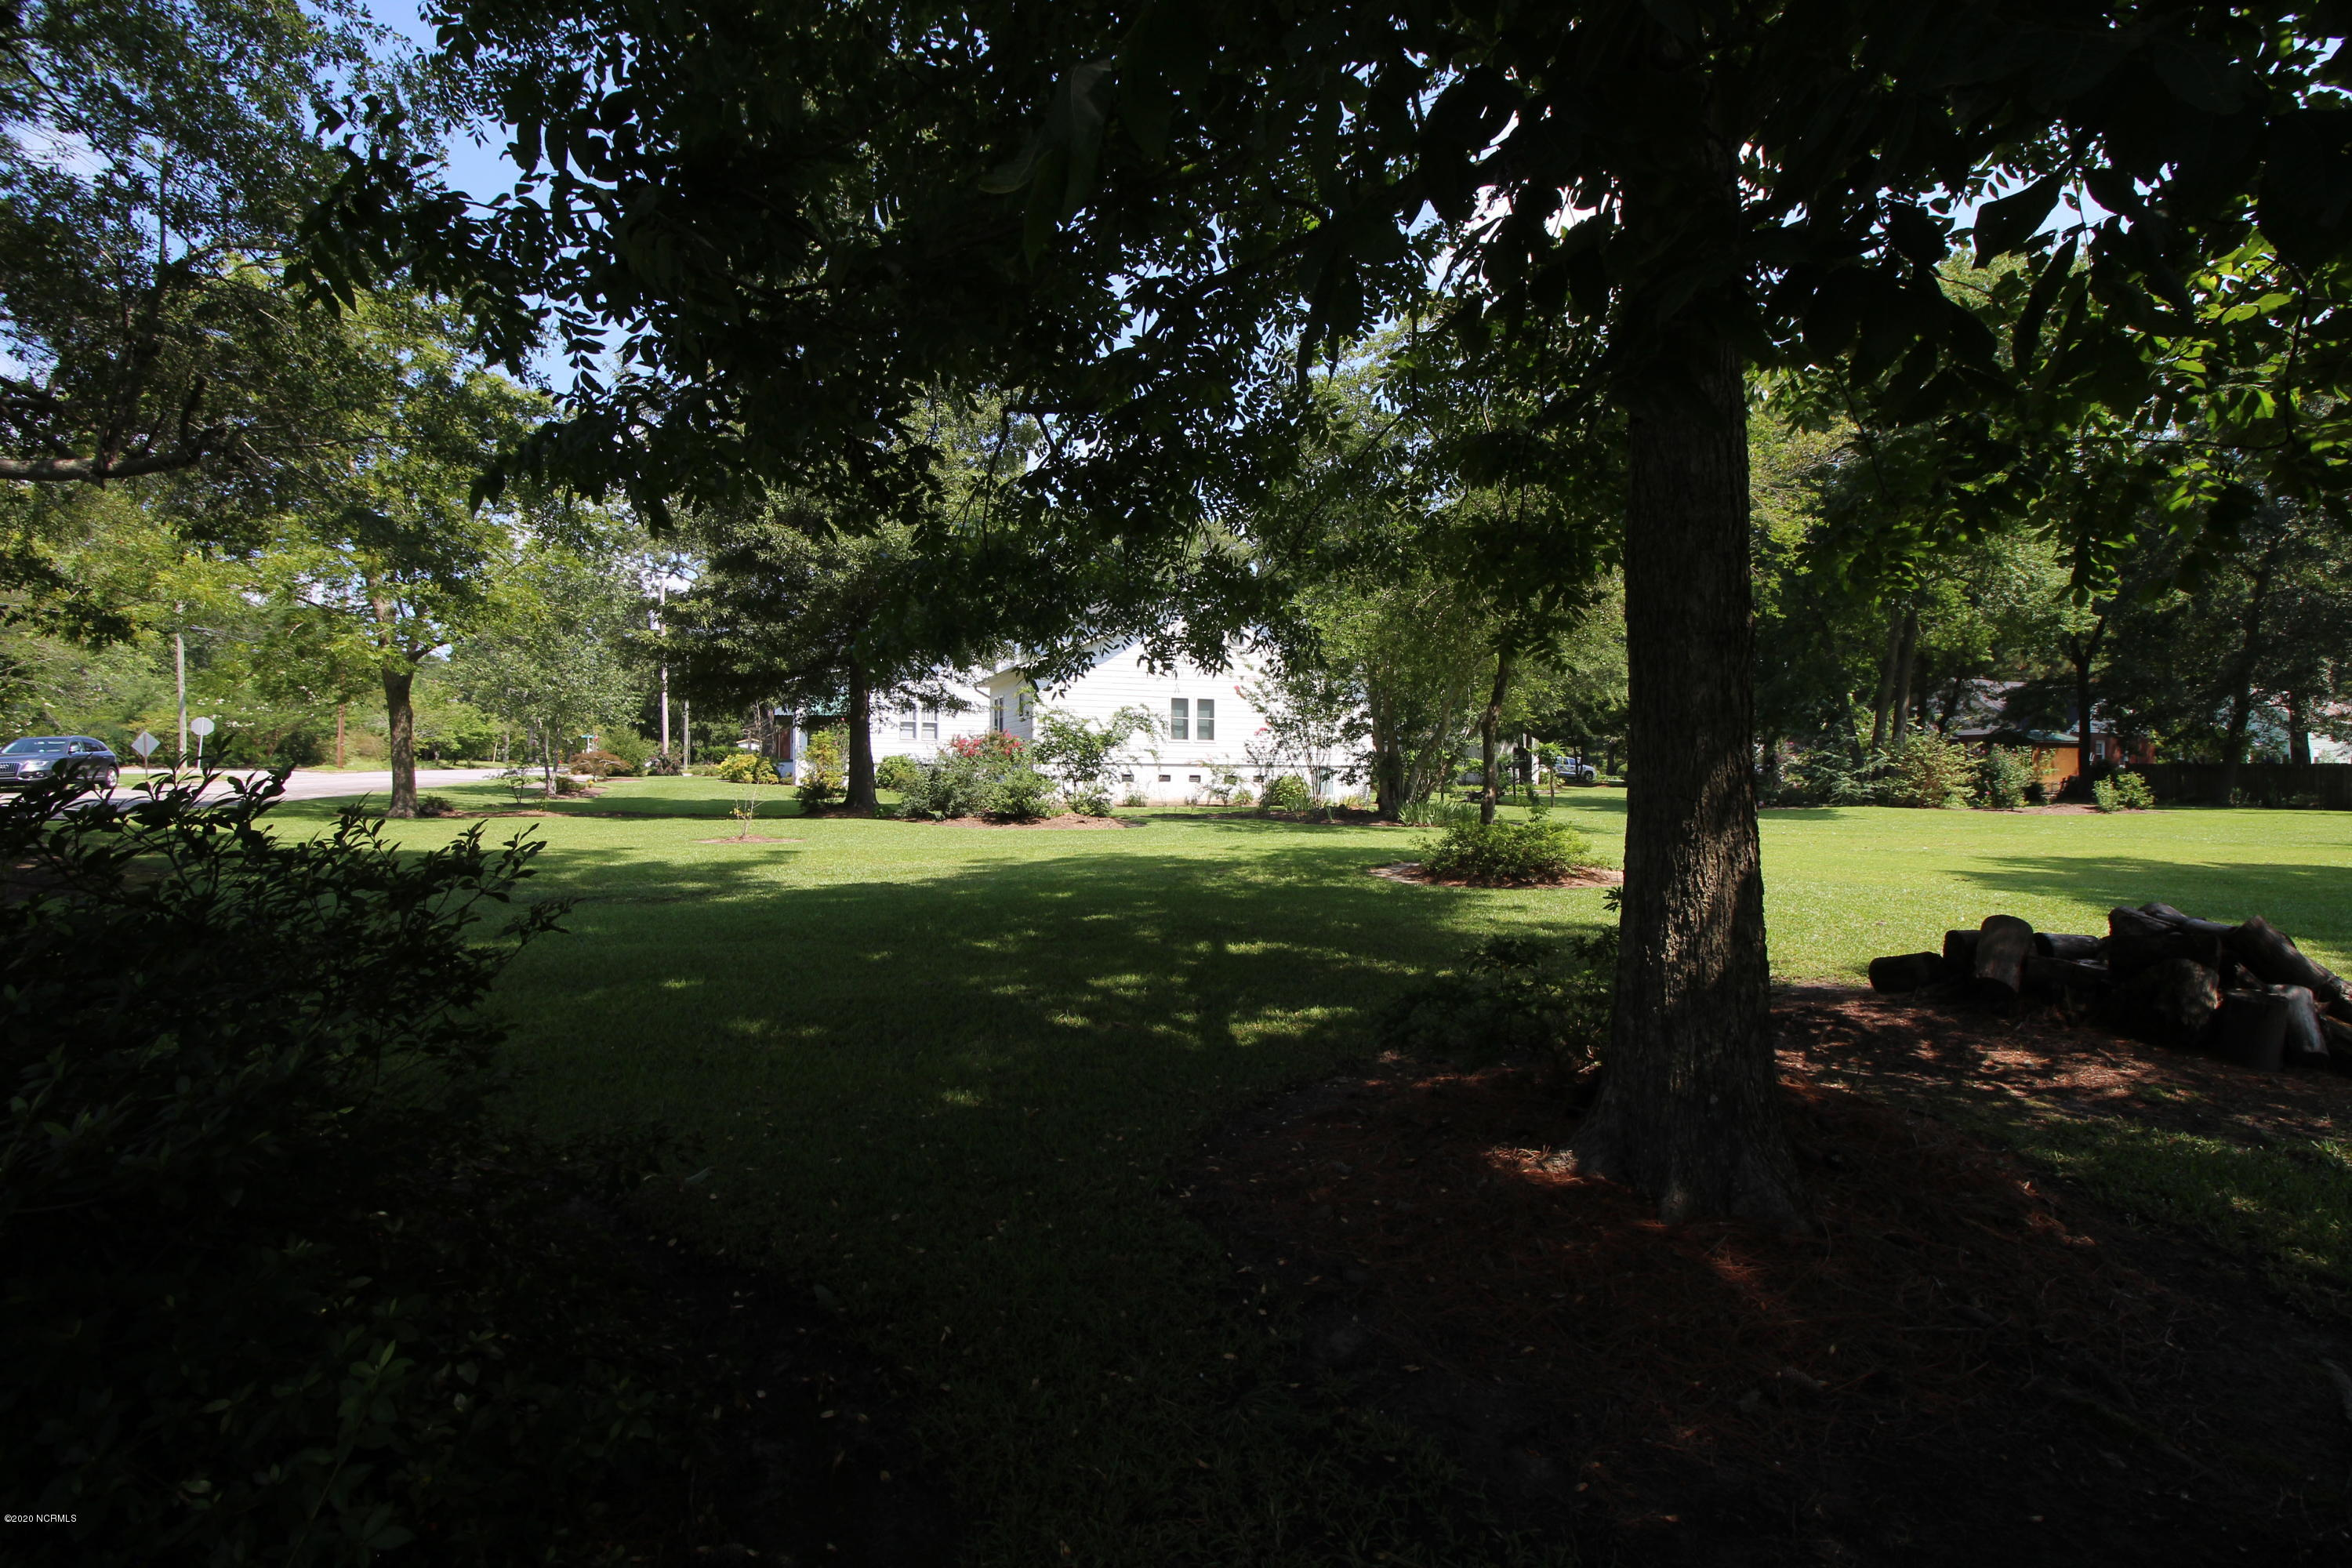 3243 Eason Street, Fountain, North Carolina 27829, 4 Bedrooms Bedrooms, 12 Rooms Rooms,2 BathroomsBathrooms,Single family residence,For sale,Eason,100231089